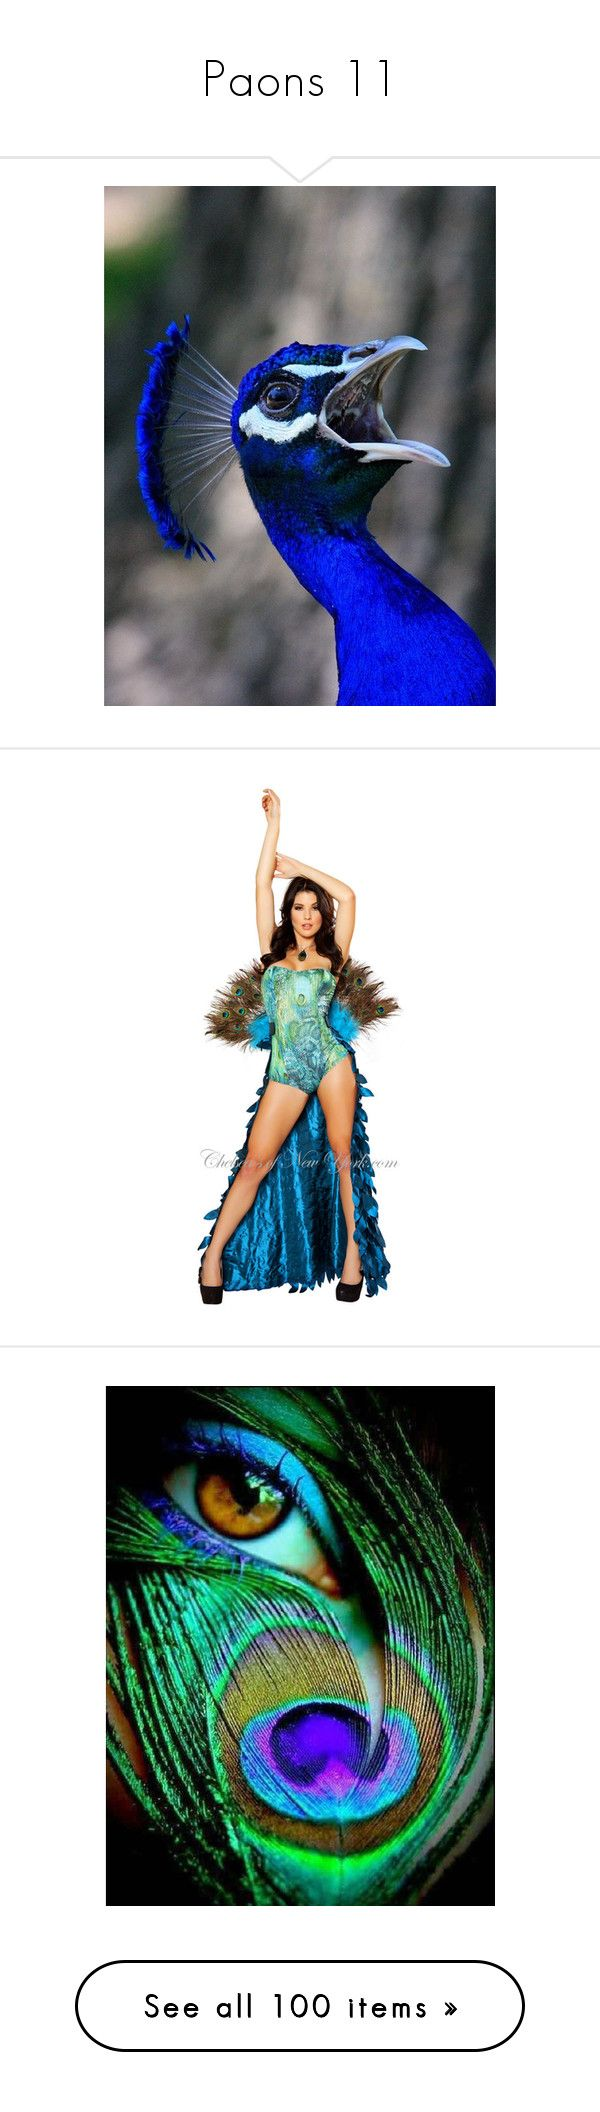 """""""Paons 11"""" by ilona2010 ❤ liked on Polyvore featuring costumes, sexy peacock costume, sexy halloween costumes, sexy peacock halloween costume, sexy costumes, peacock halloween costume, eyes, backgrounds, animals and peacock"""